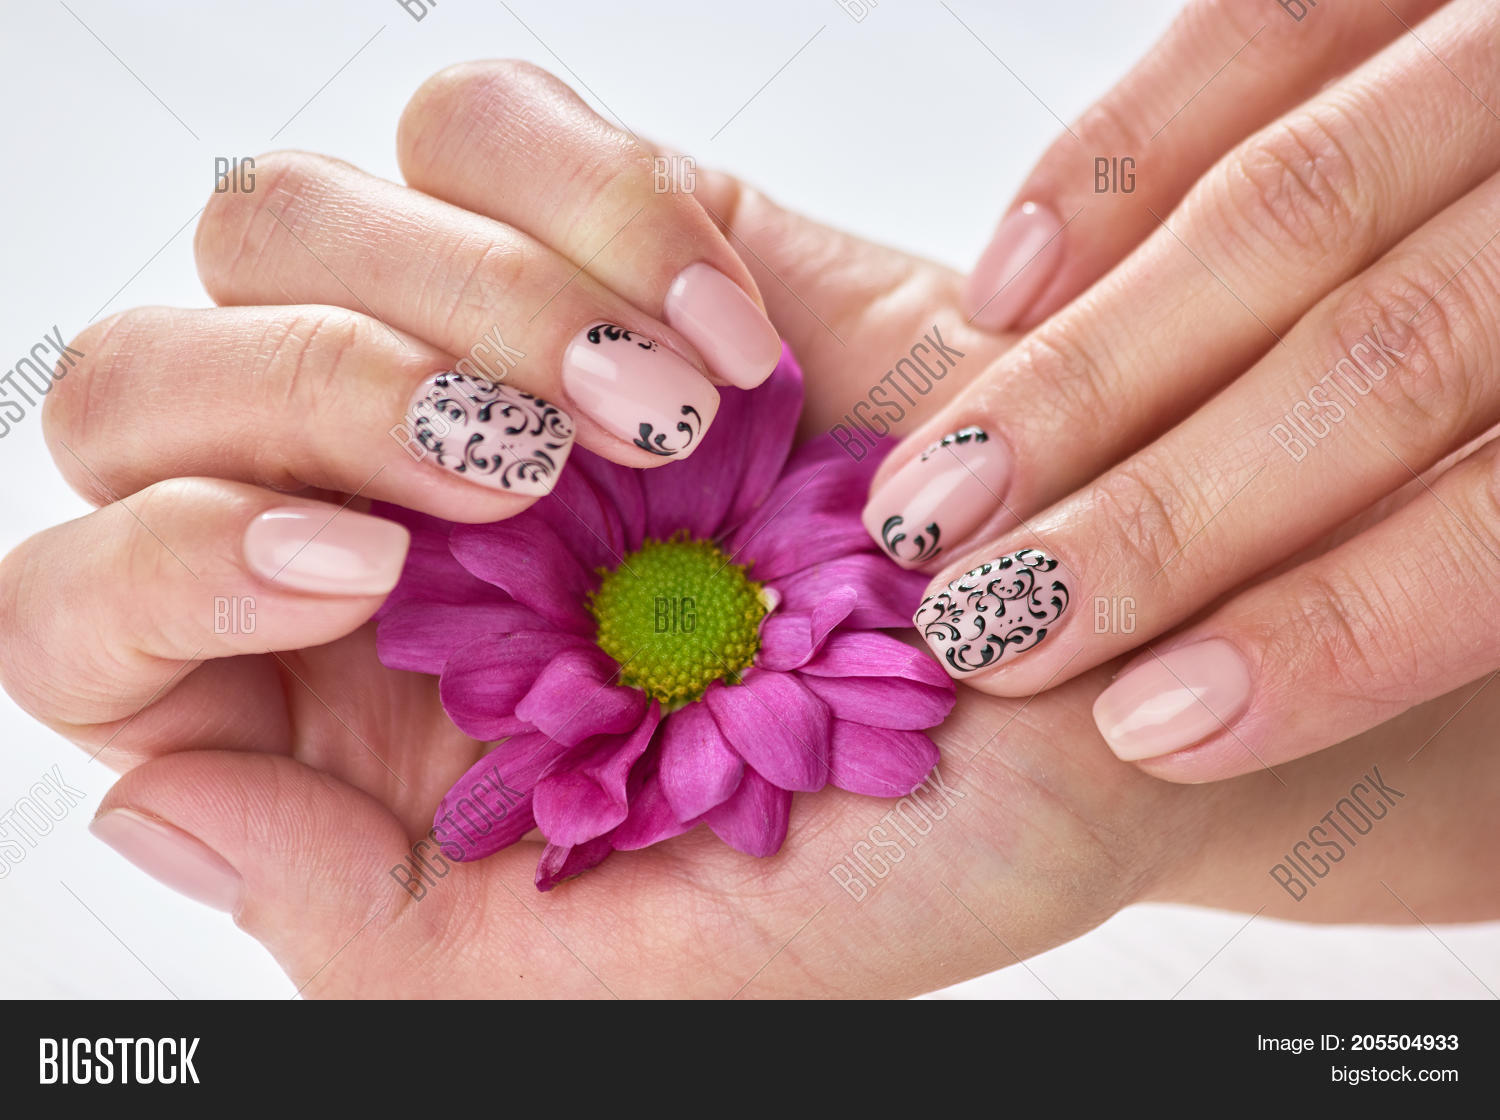 Female Manicured Hands Image Photo Free Trial Bigstock